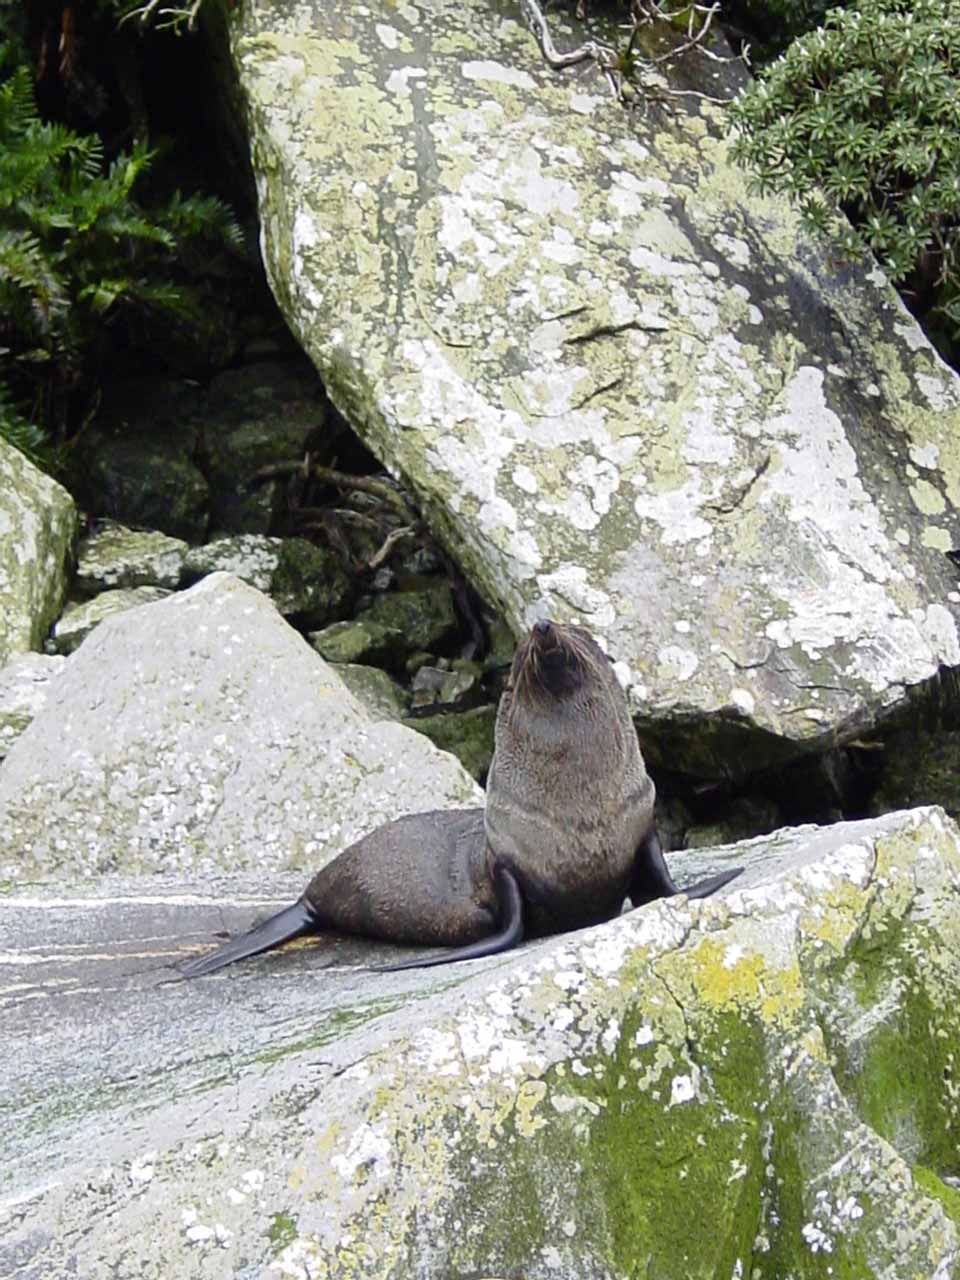 Closer look at the New Zealand fur seal